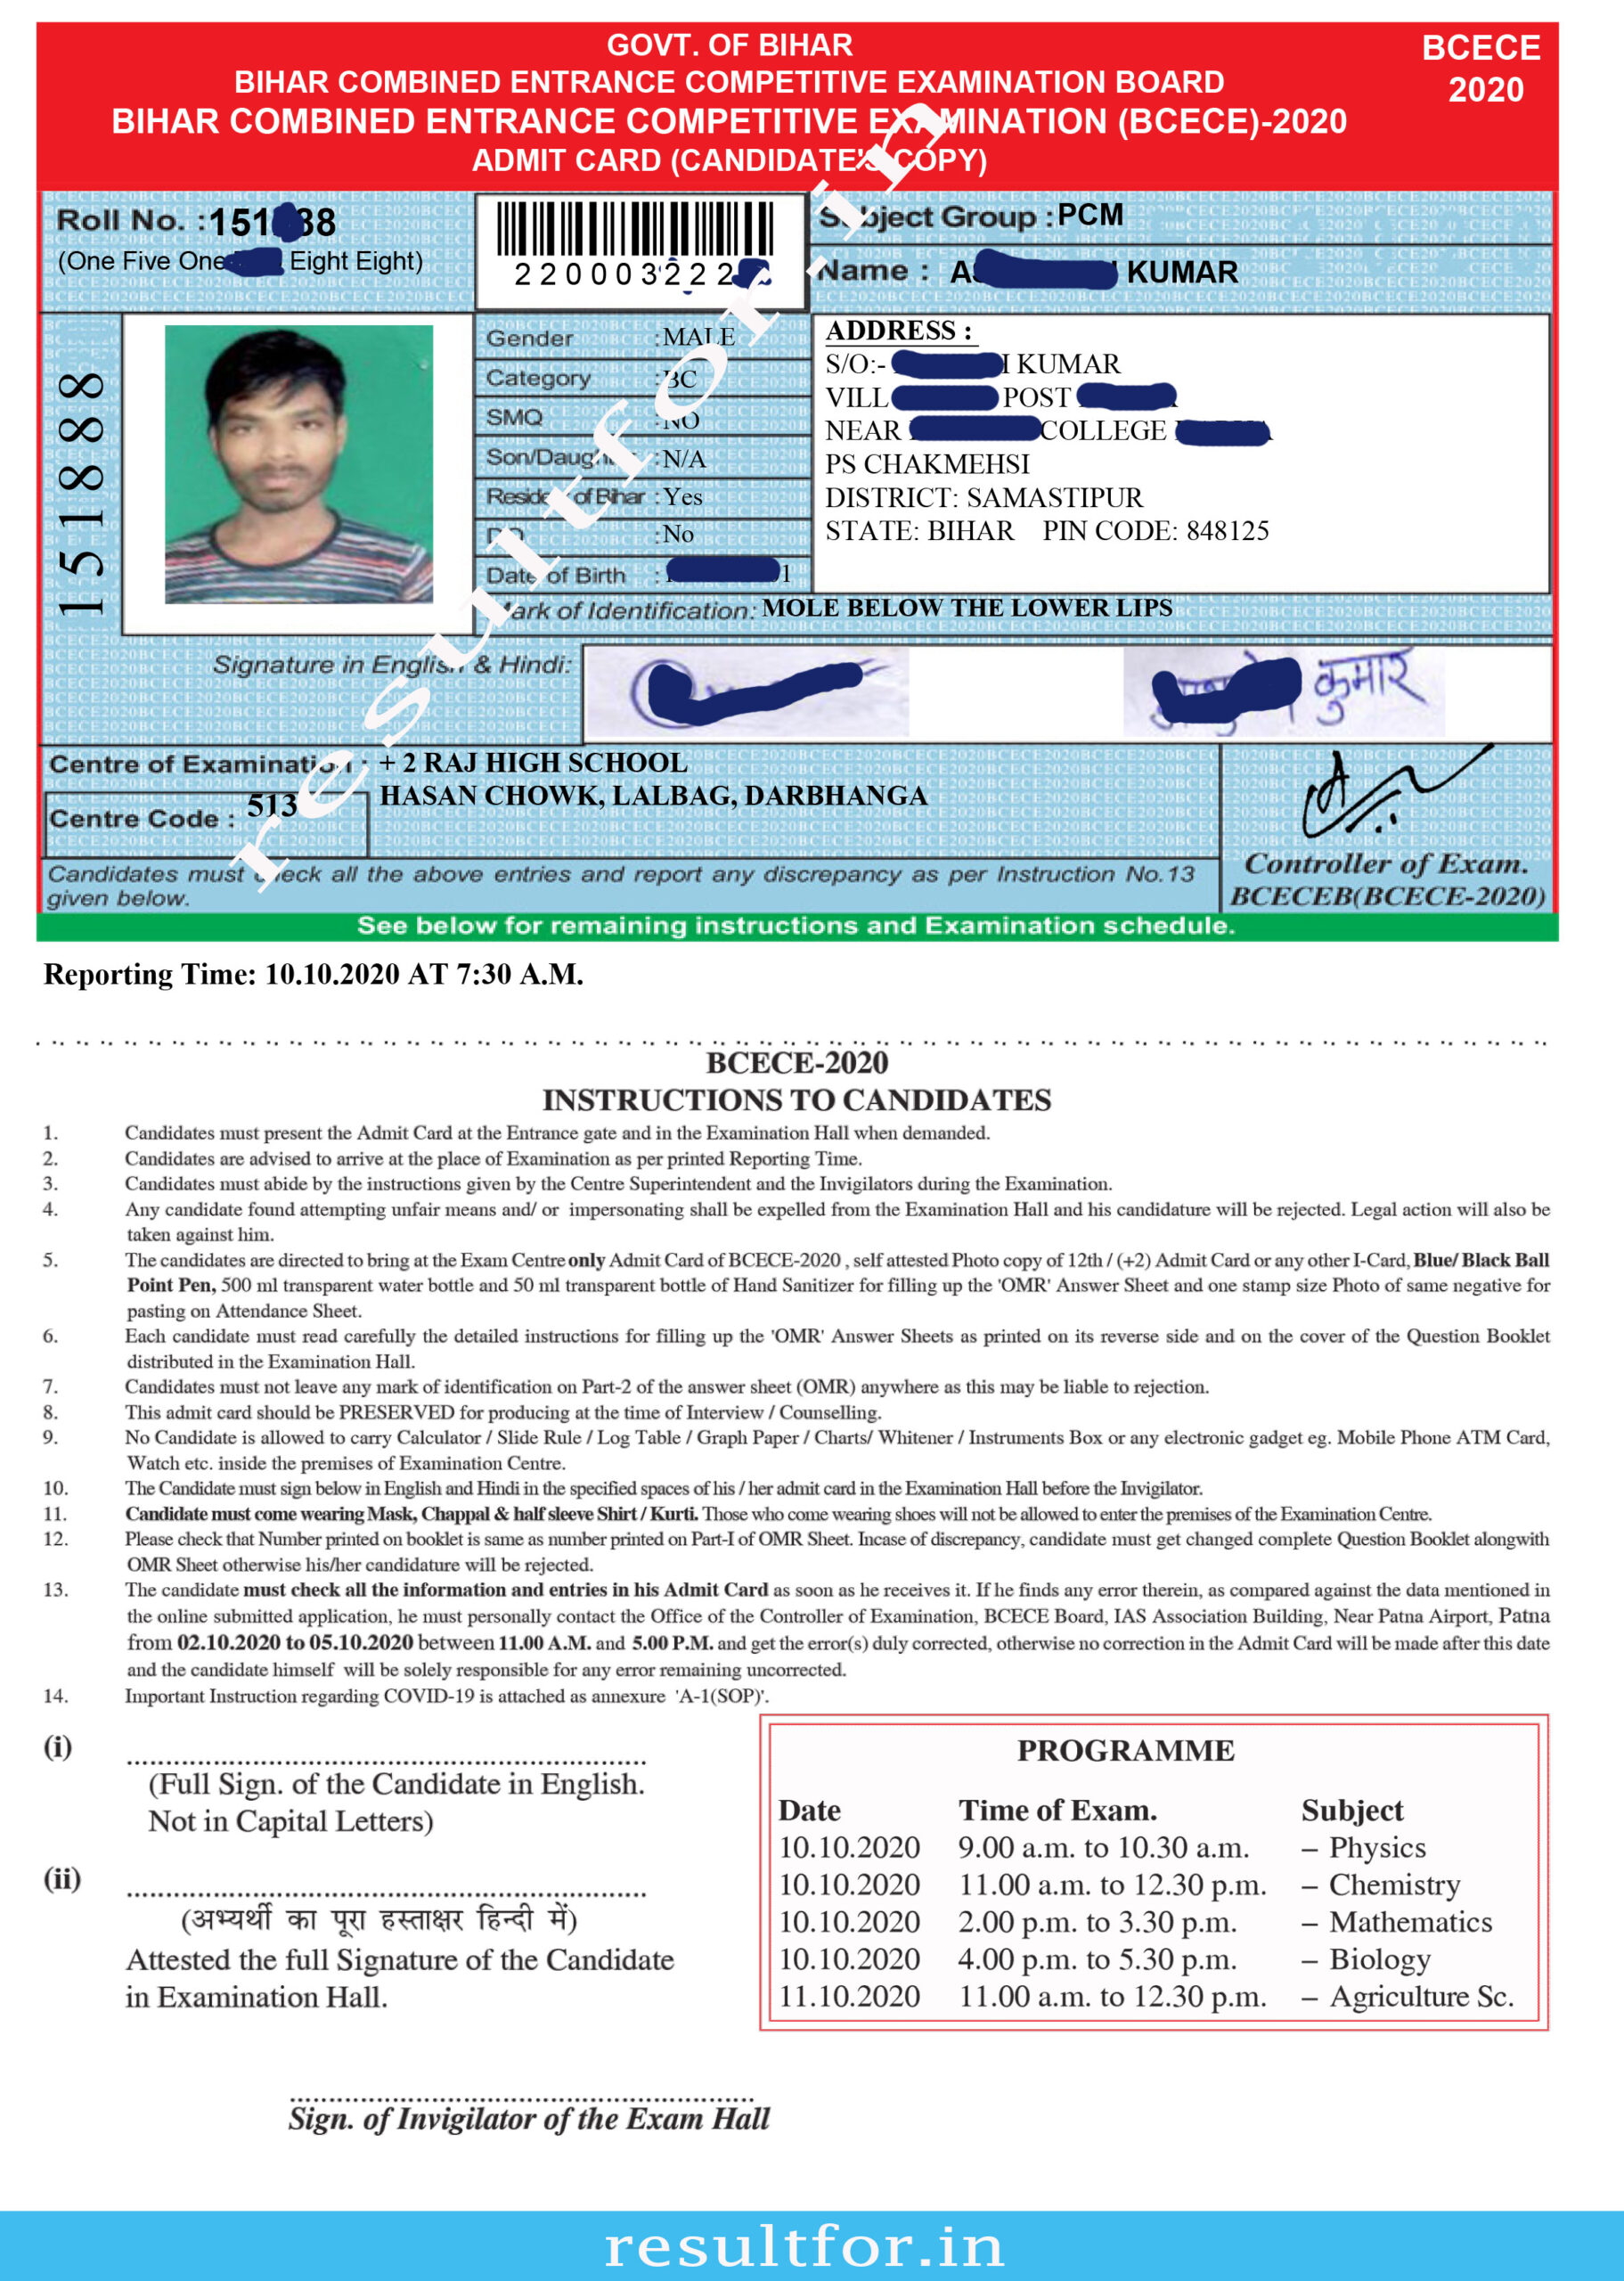 Bihar BCECE Admit Card UG Entrance Exam